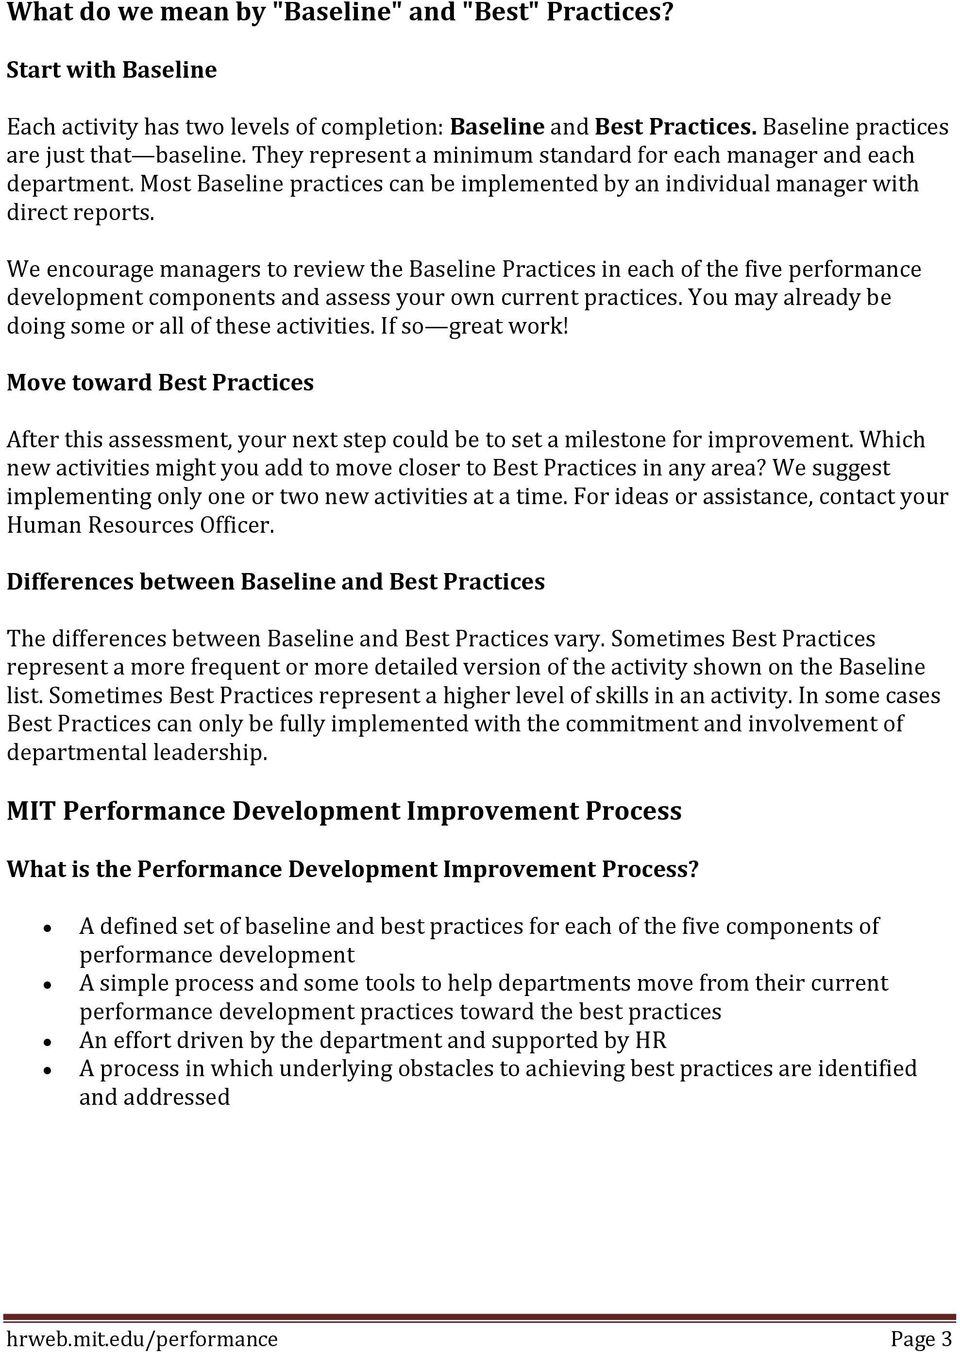 We encourage managers to review the Baseline Practices in each of the five performance development components and assess your own current practices.